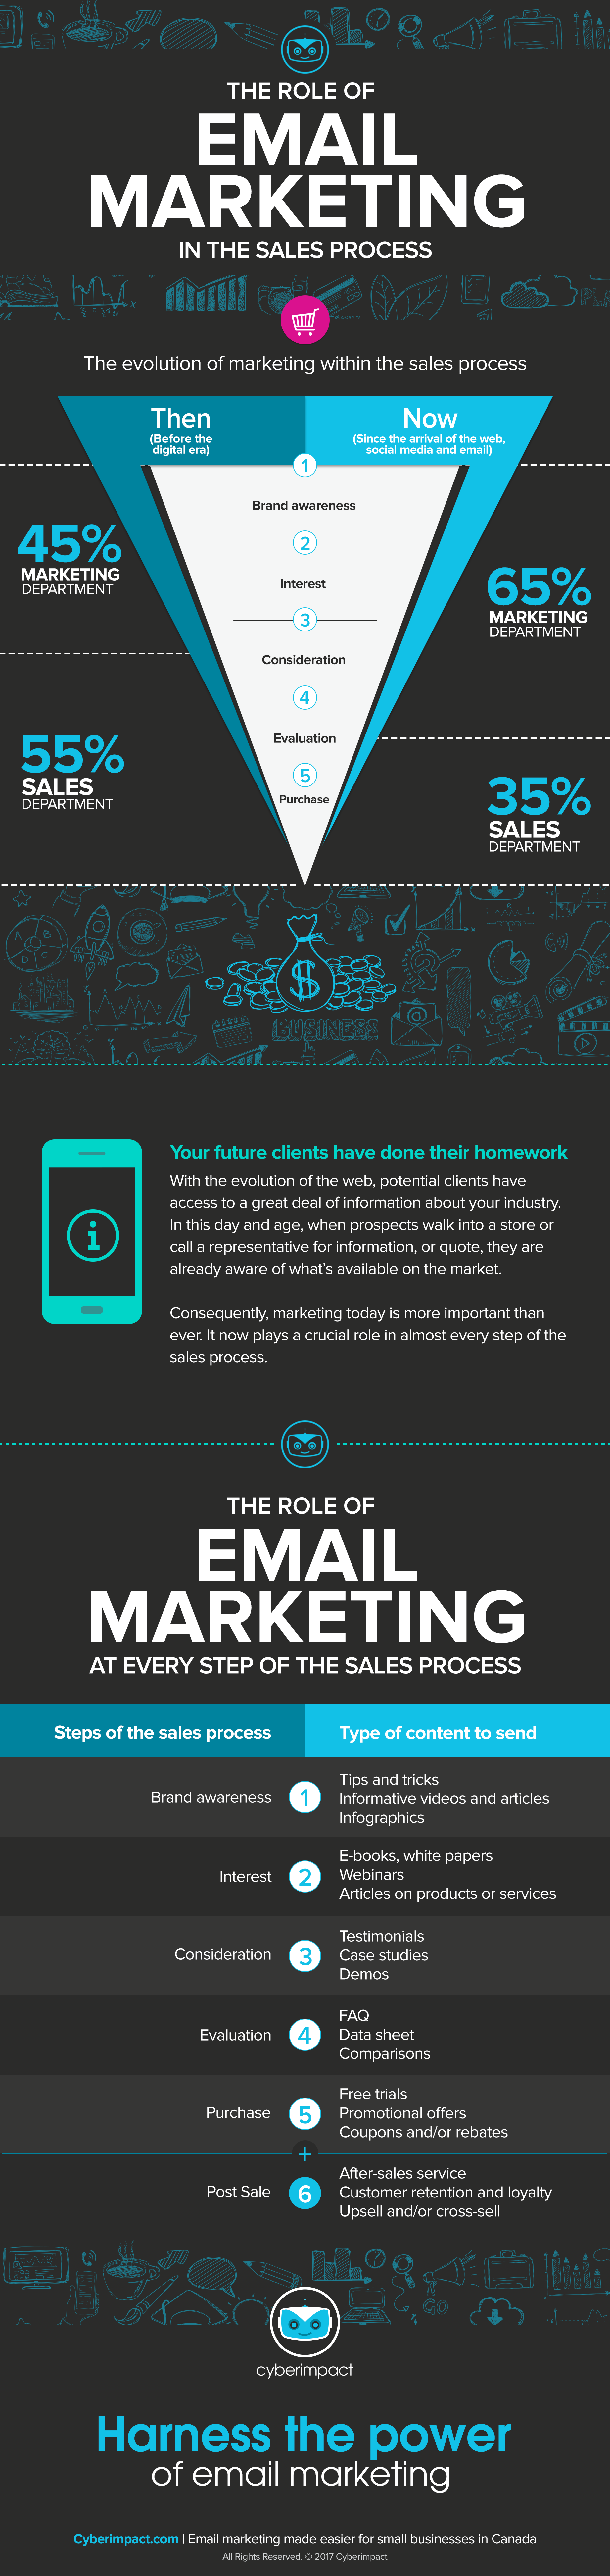 The role of email marketing in the sales process - Infographic